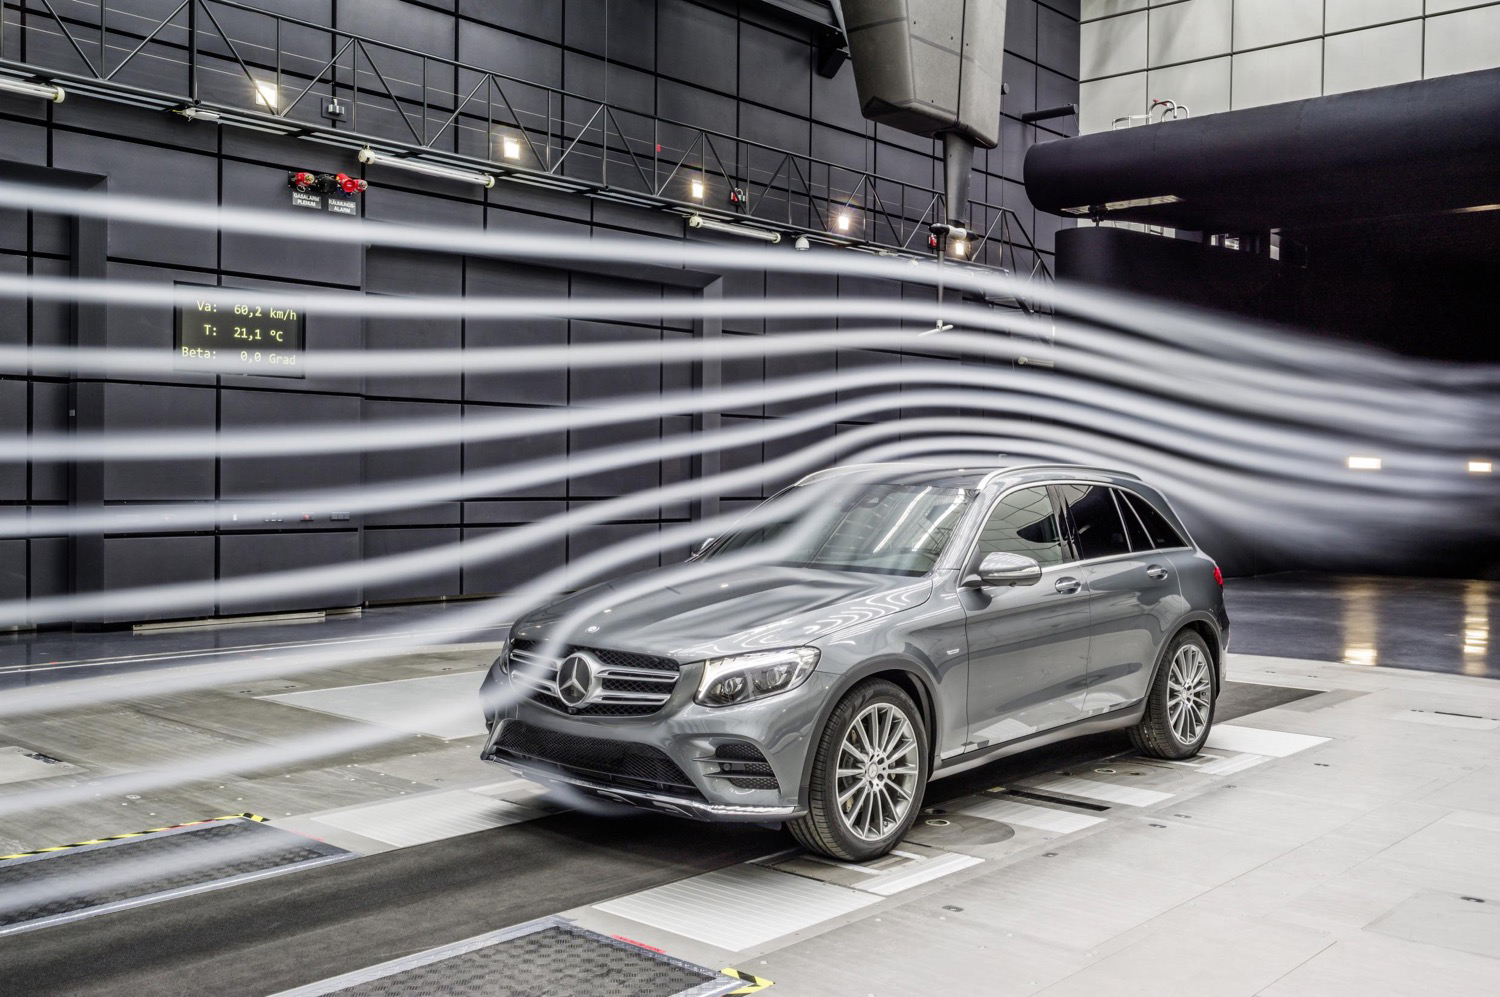 Rbm of atlanta meet the stunning new 2016 mercedes benz glc for Rbm mercedes benz